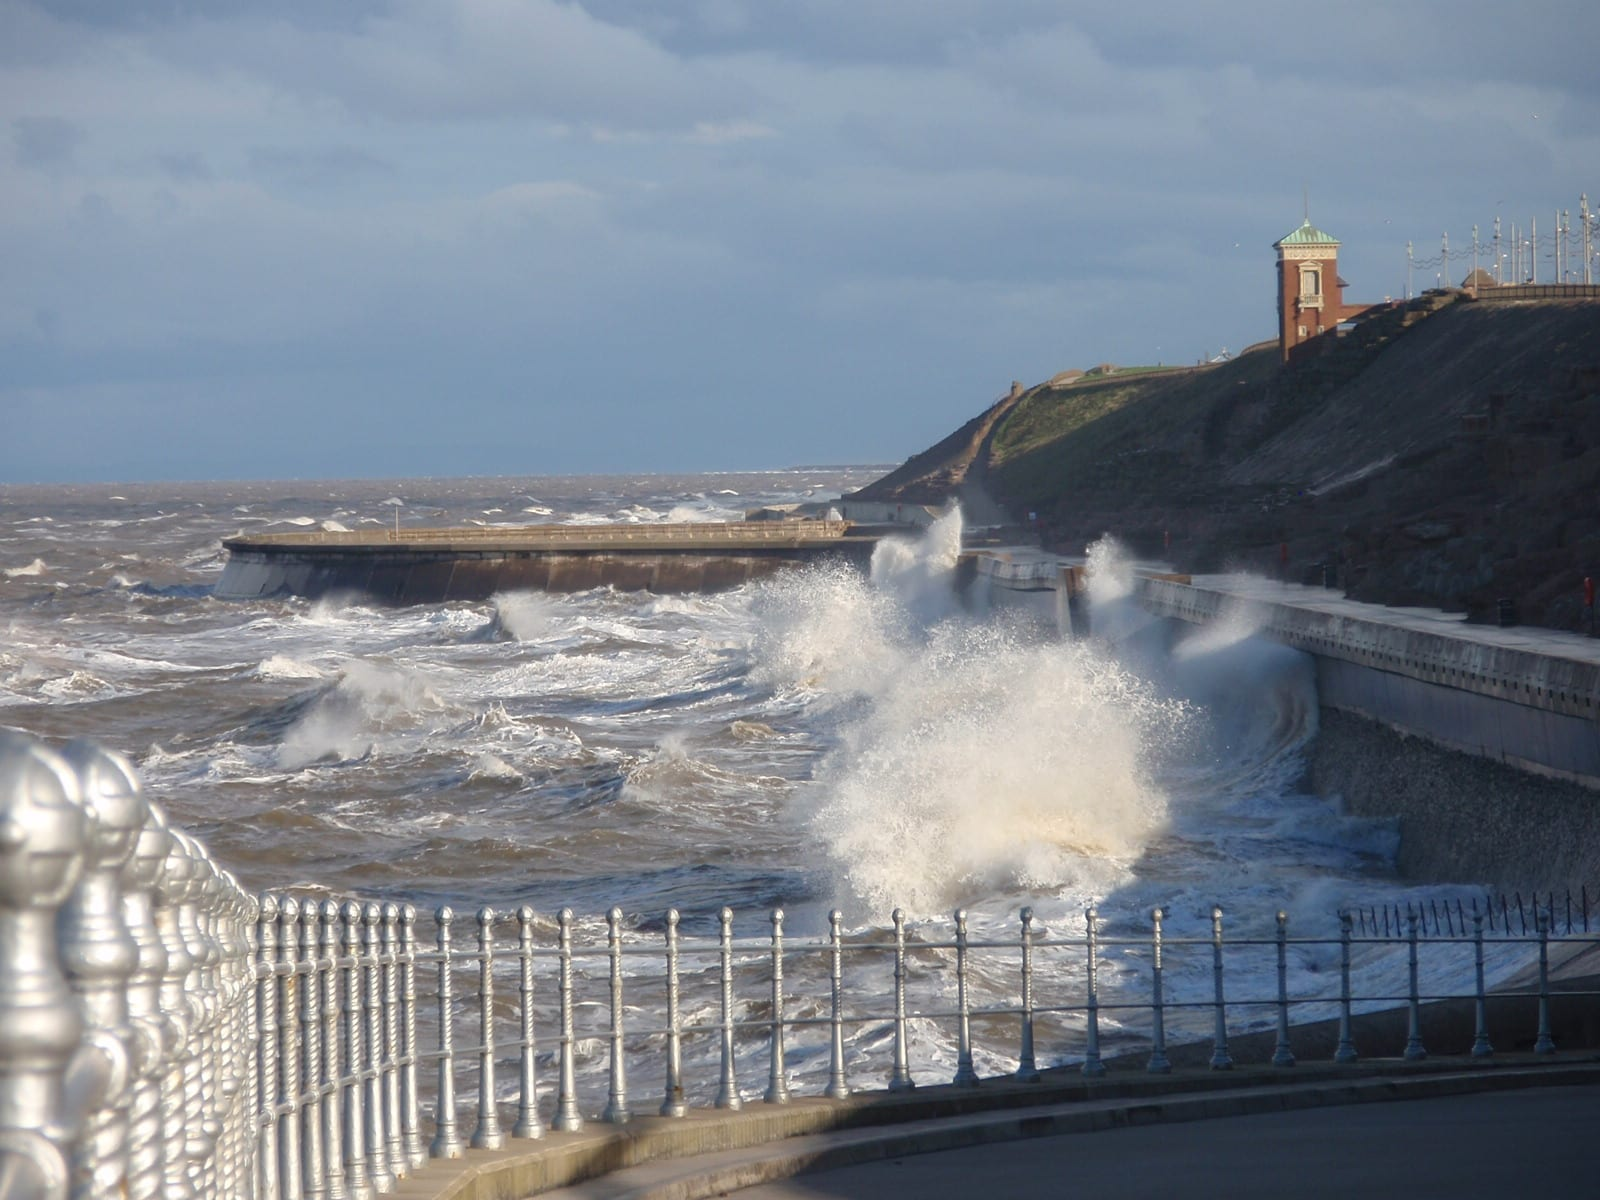 Sea Overtopping at the Cliffs, Blackpool North Shore